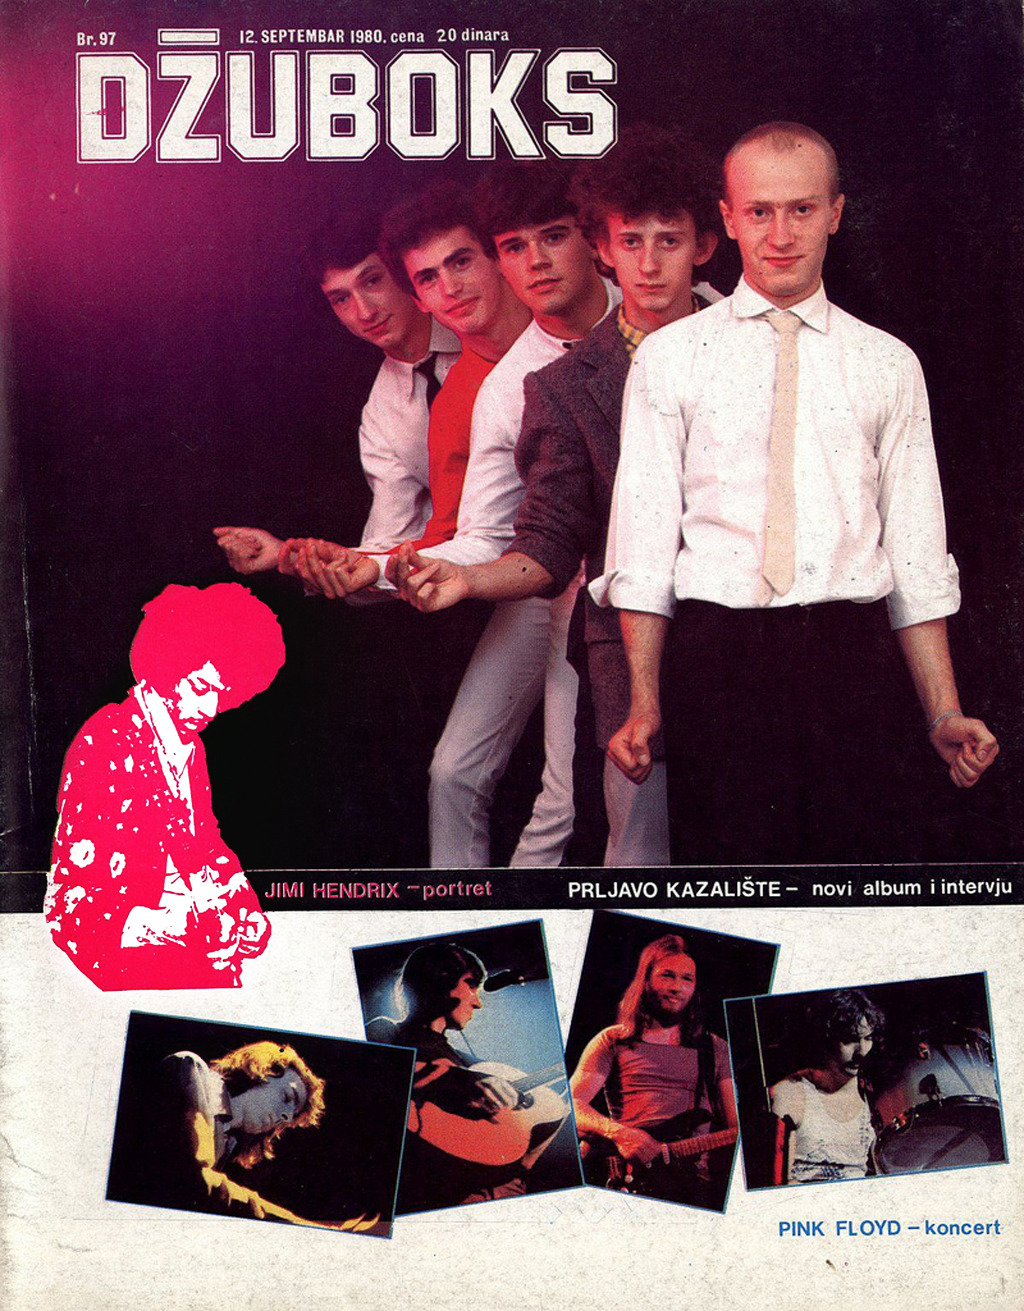 Džuboks magazine (September 12th 1980. issue), with Prljavo kazalište on the cover.